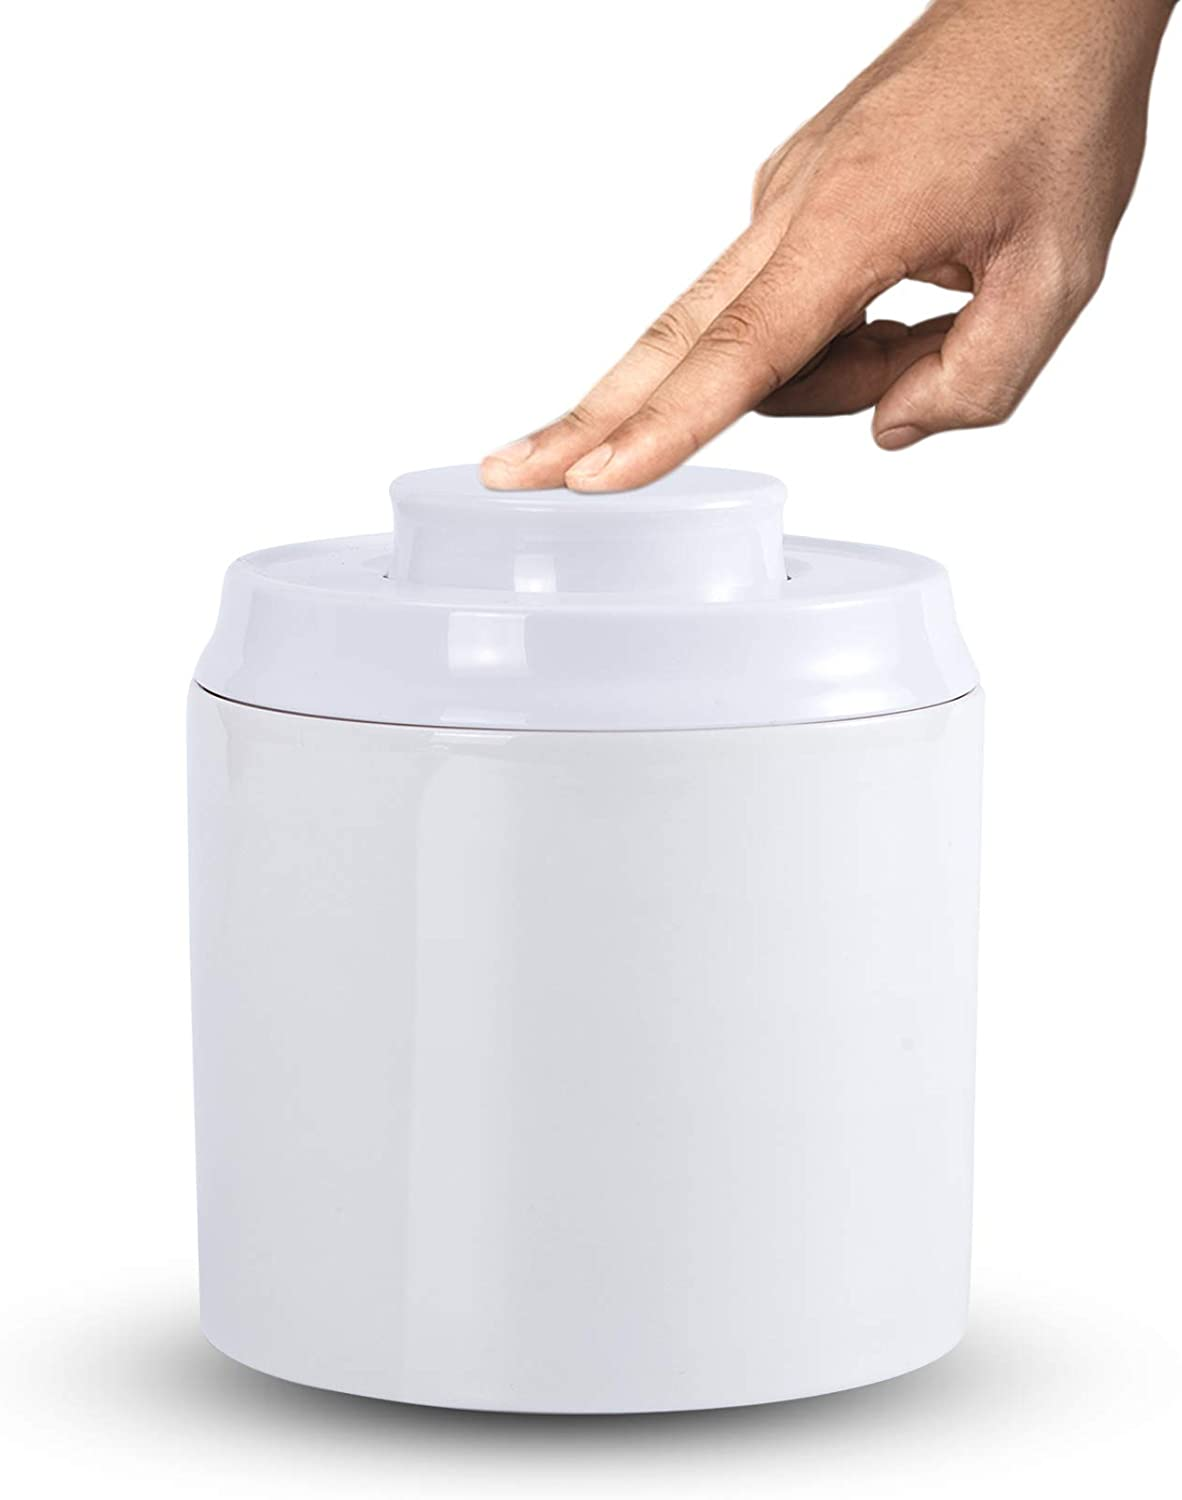 SIDUCAL Food Storage Containers, Cat Food Storage Canister Ceramic Jar with Pop Airtight Lid, 17 Oz Portable Crock For Tea Sugar Coffee-White